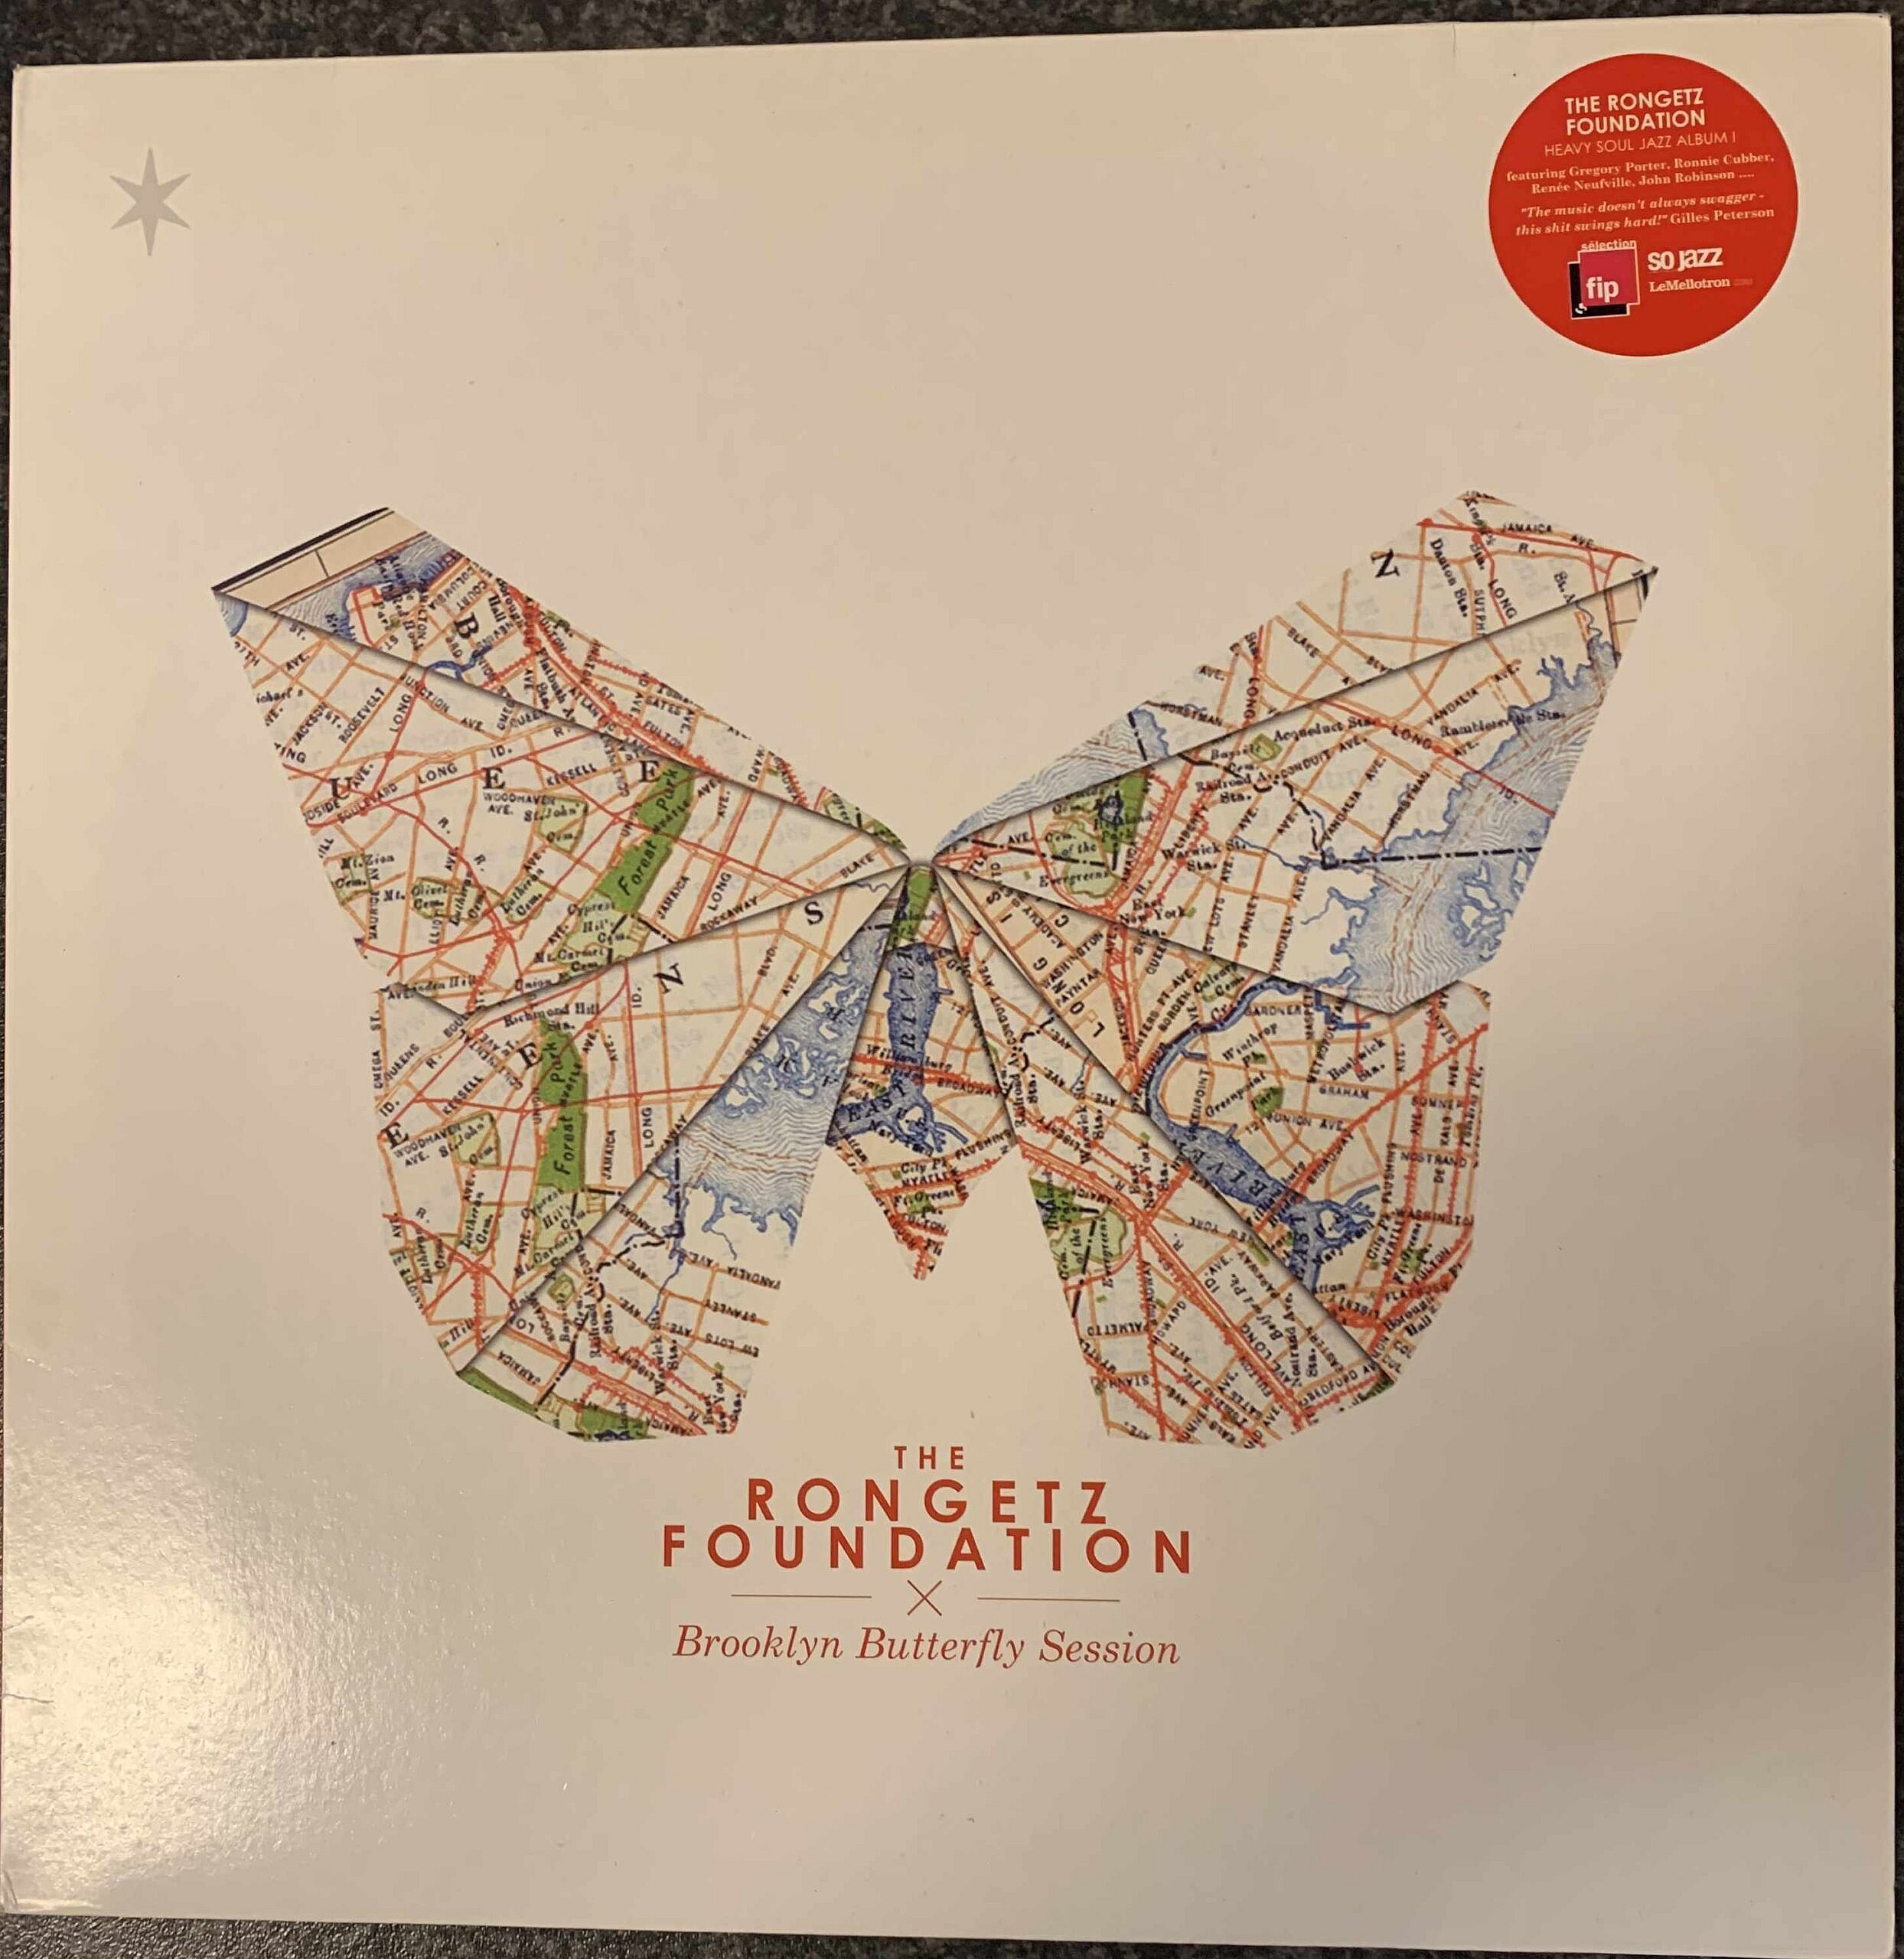 Brooklyn Butterfly Sessions